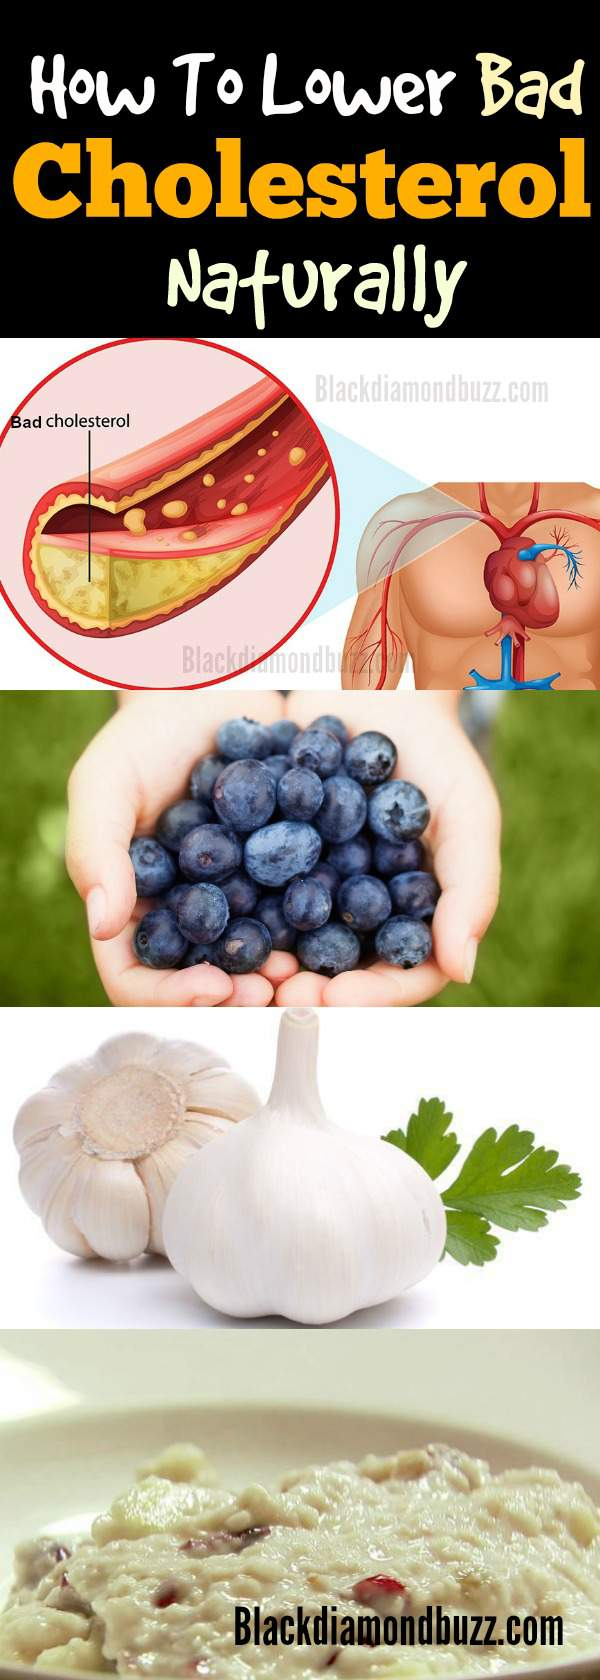 How to Lower Cholesterol Naturally in 2 Days